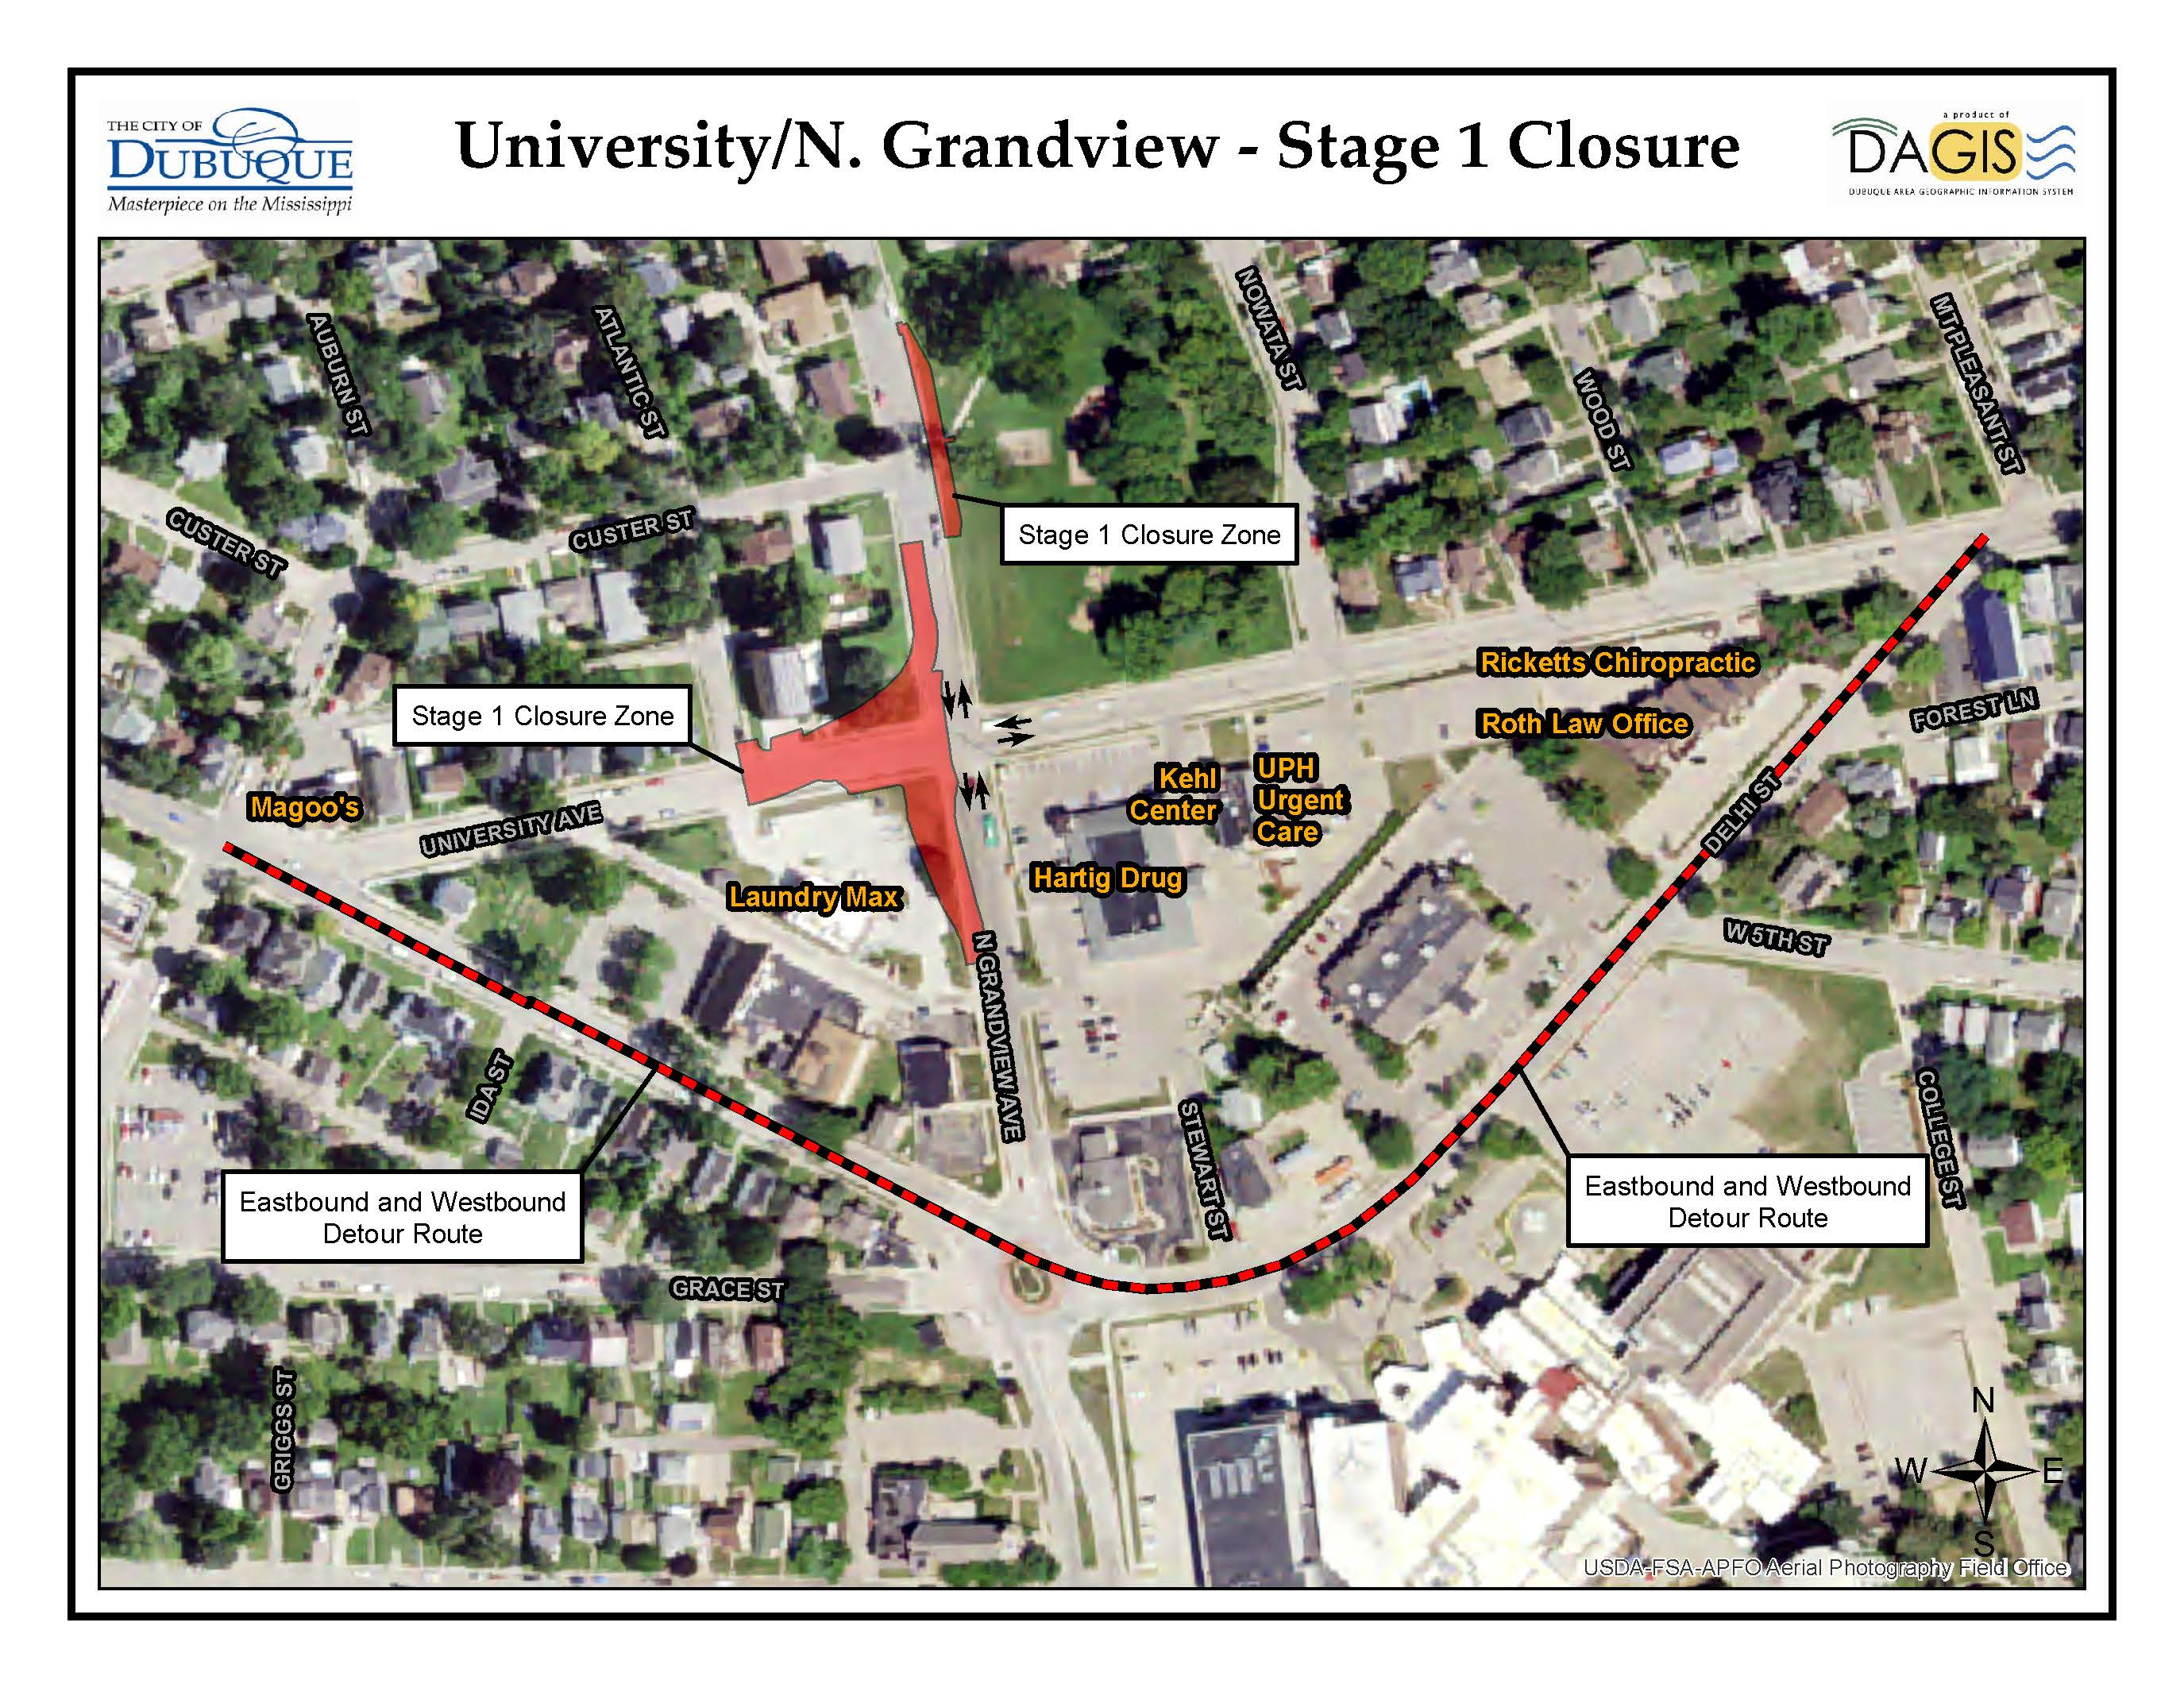 University Grandview Stage 1 Closure Press Release Map